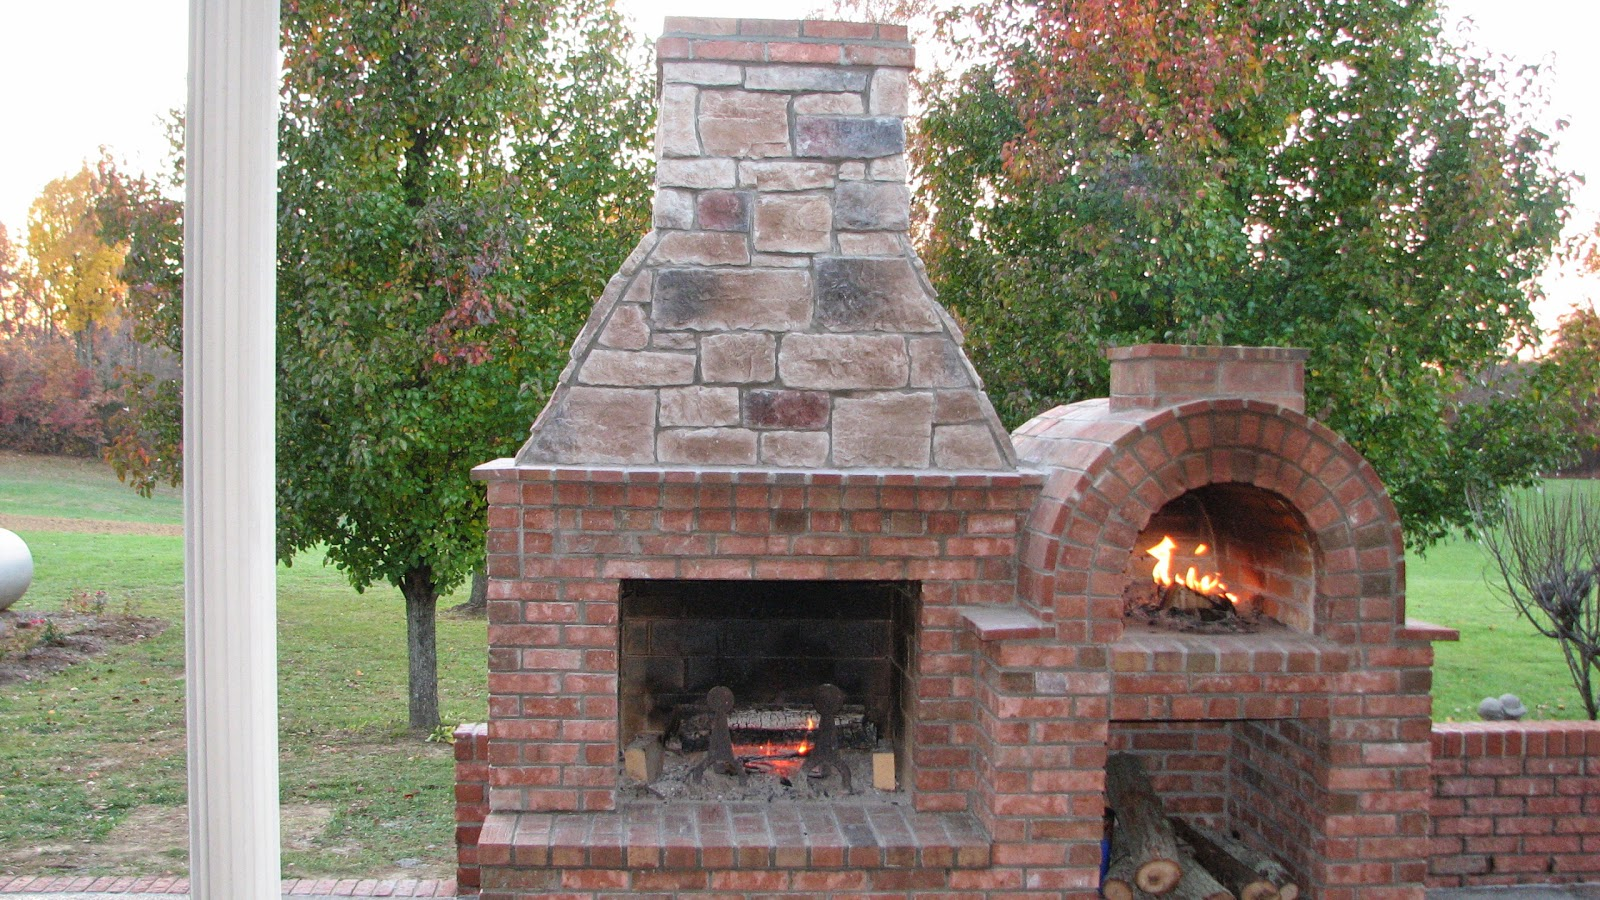 Attrayant Outdoor Brick Fireplace With Oven